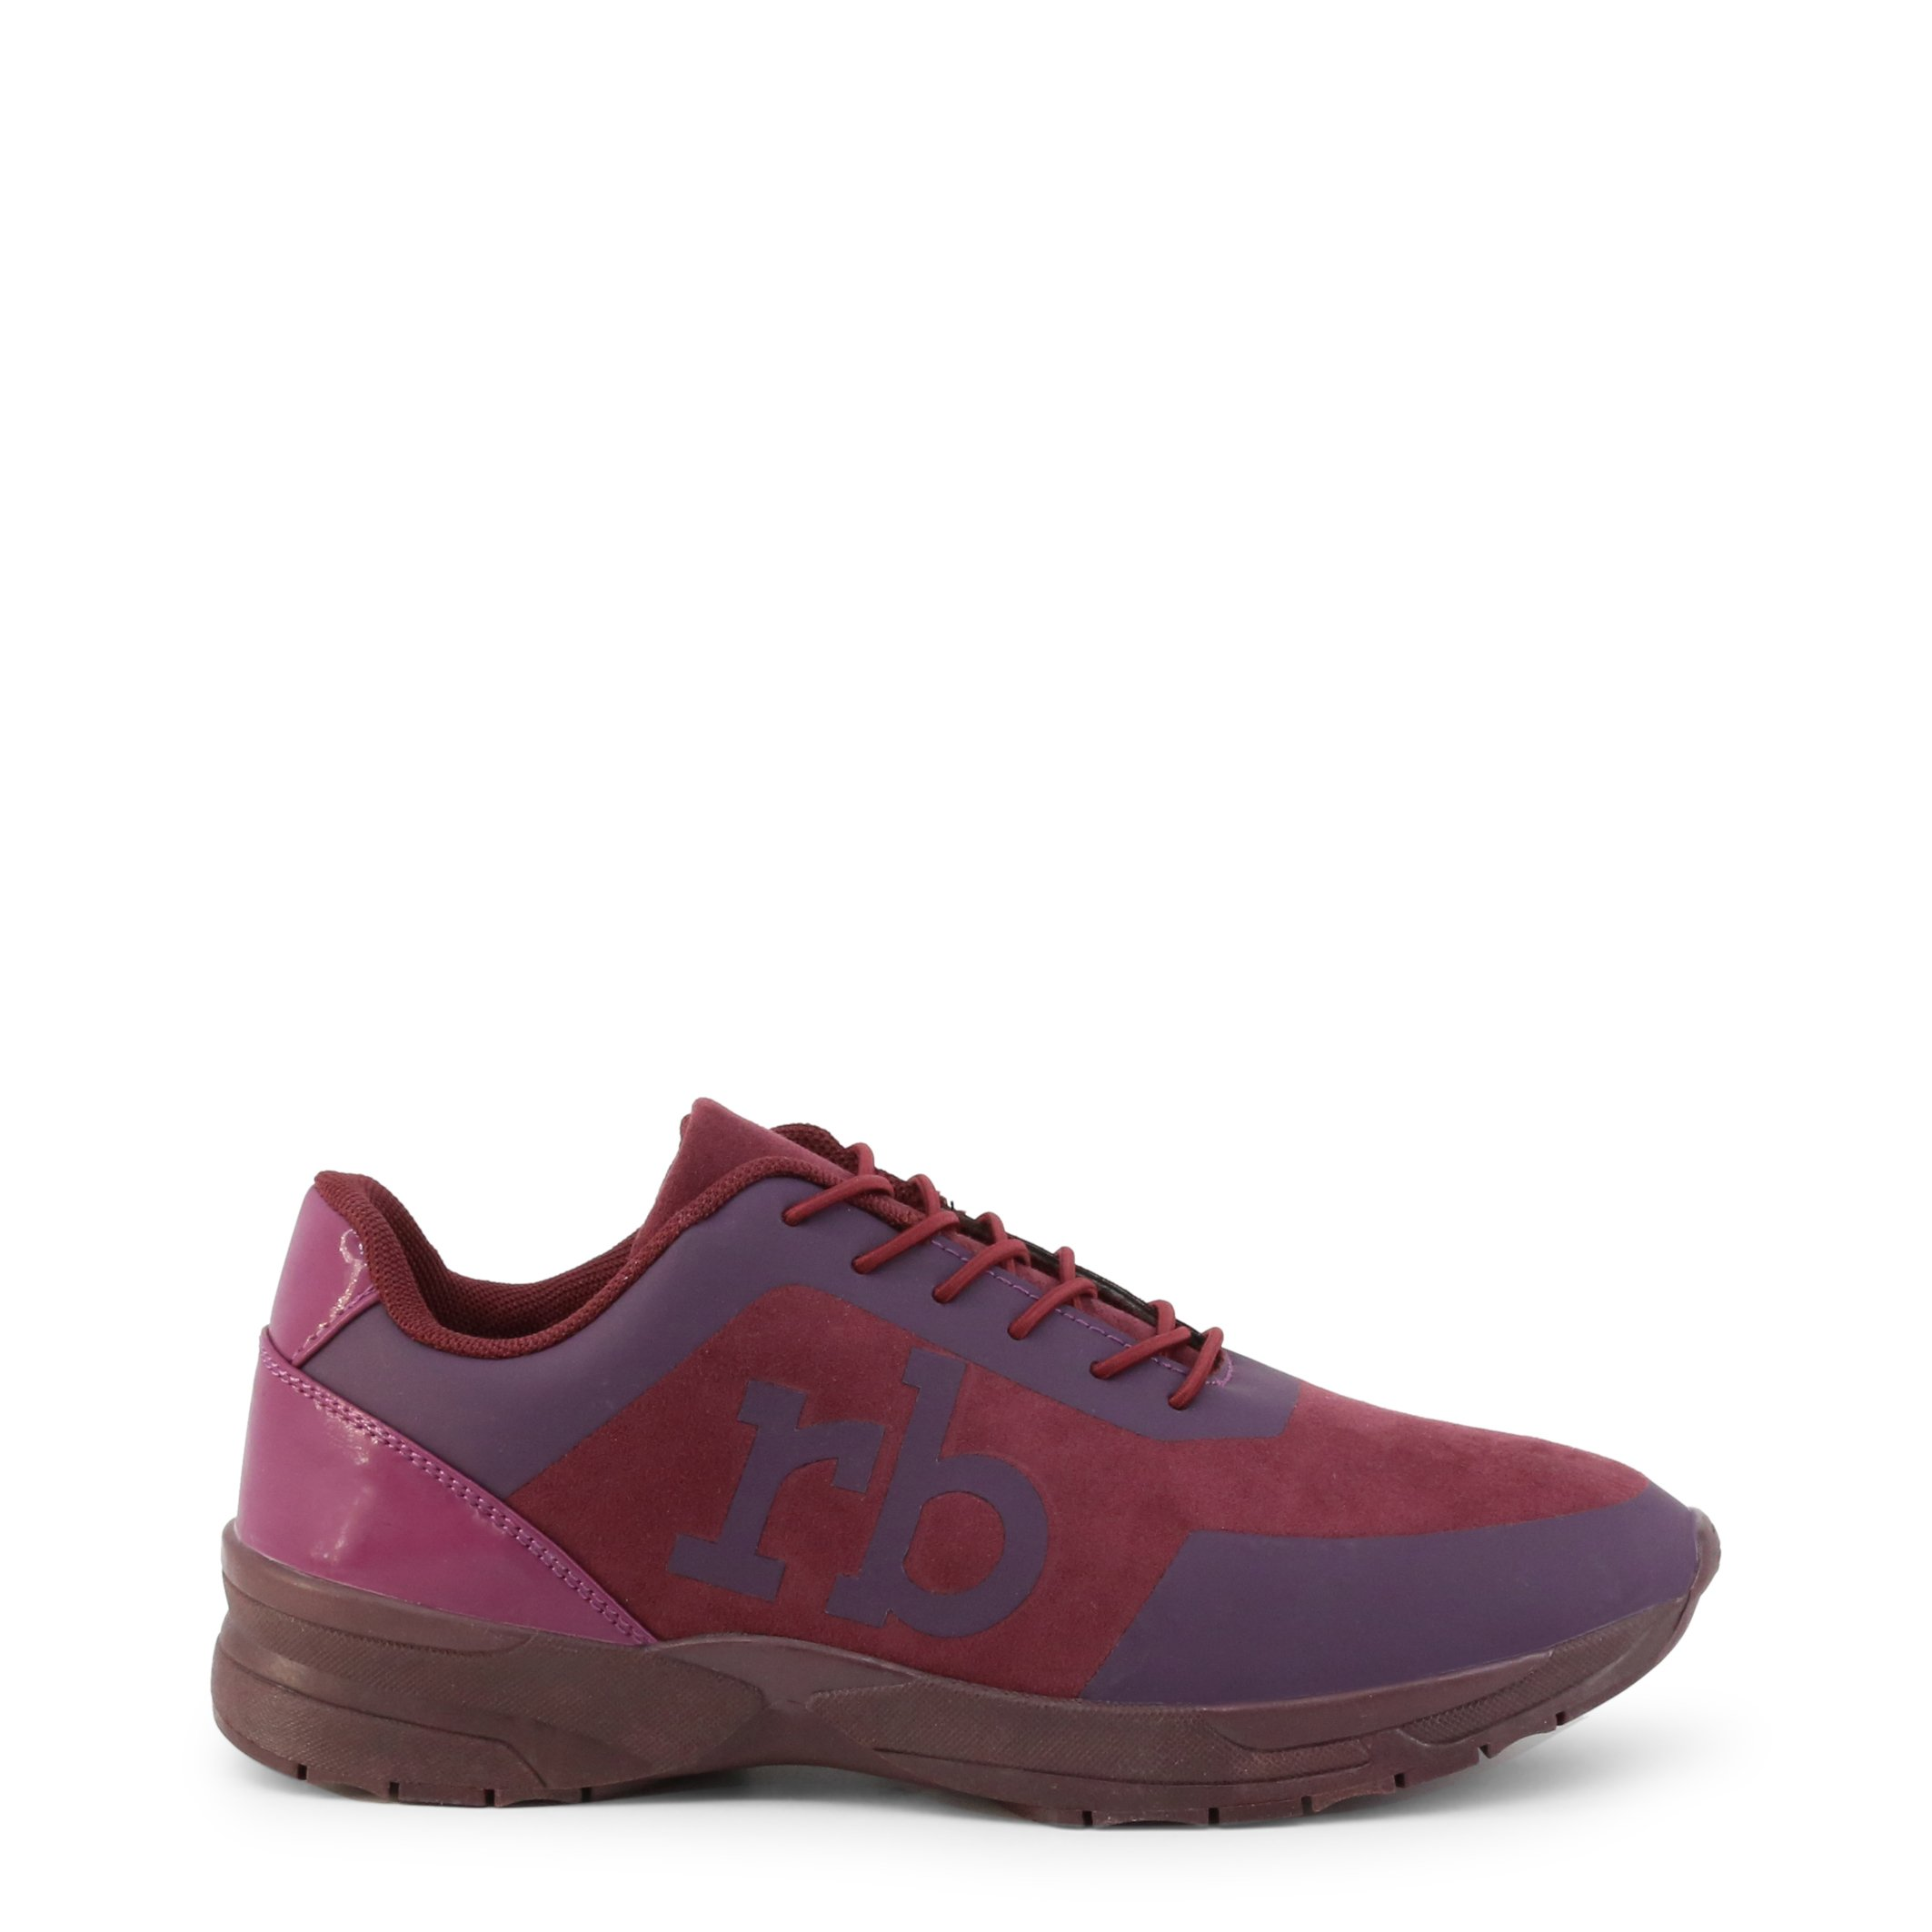 Roccobarocco Women's Trainer Various Colours RBSC1J601 - red EU 35